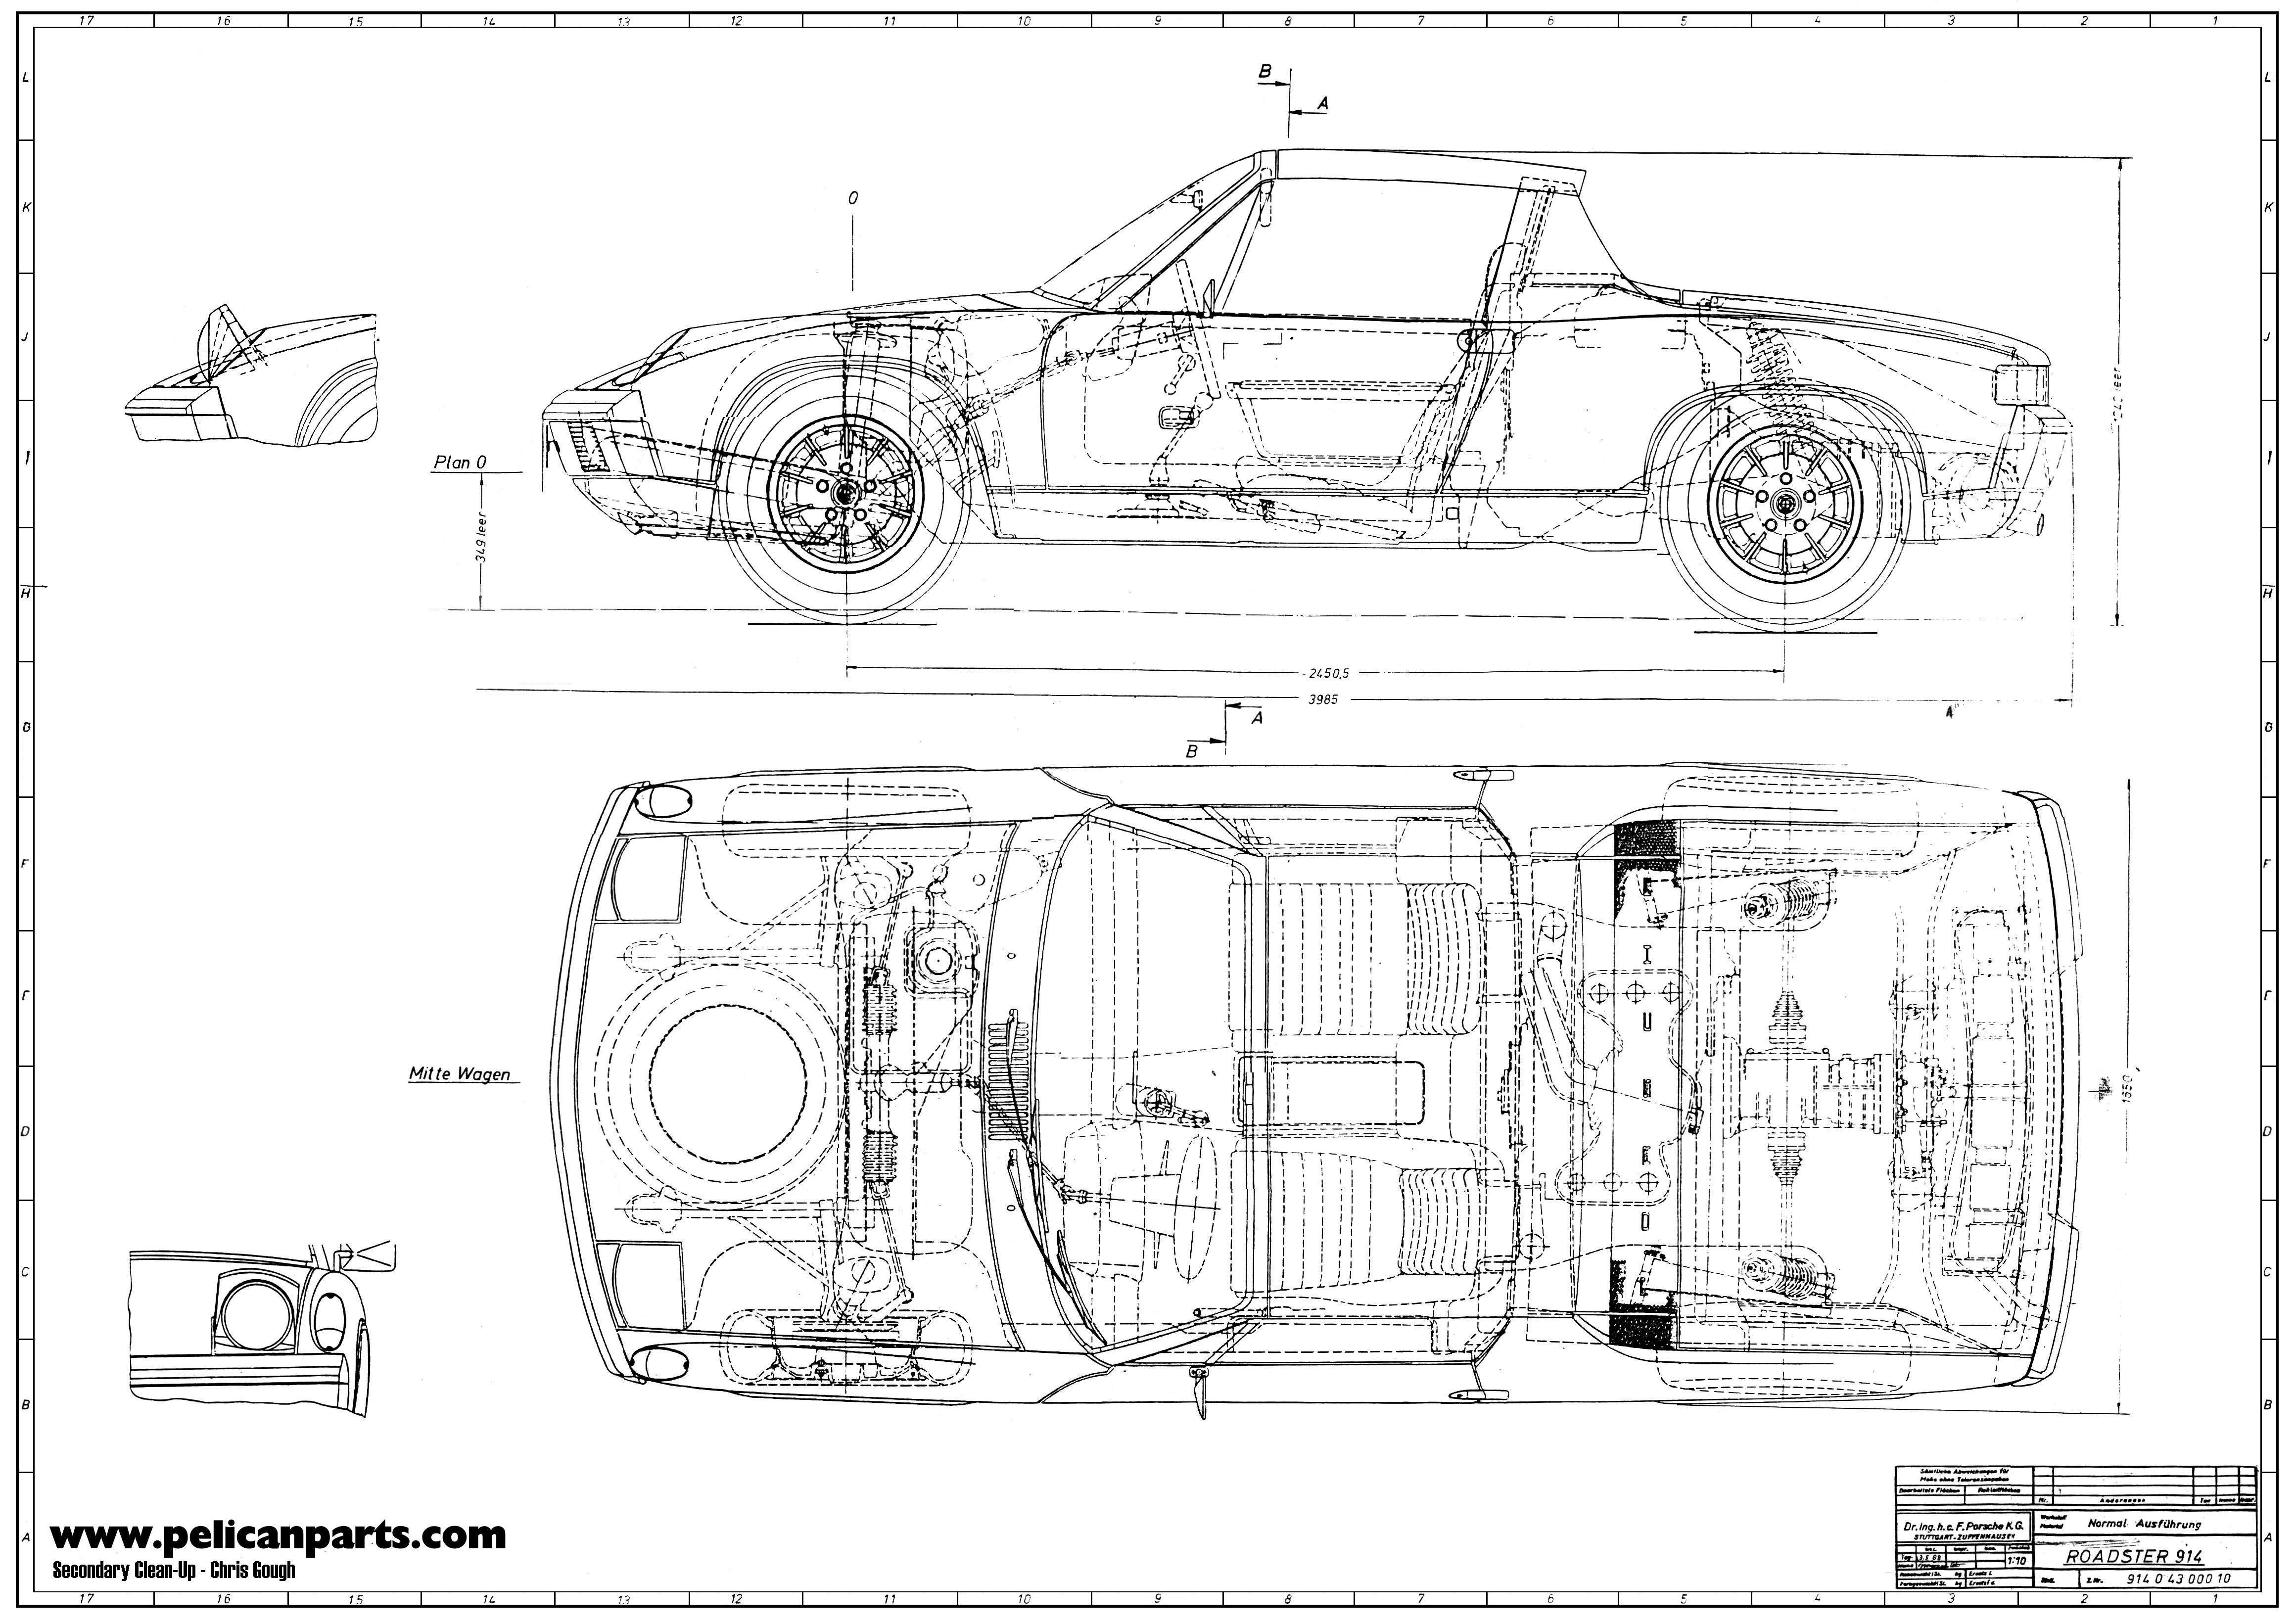 914 Blueprint Cleanedup